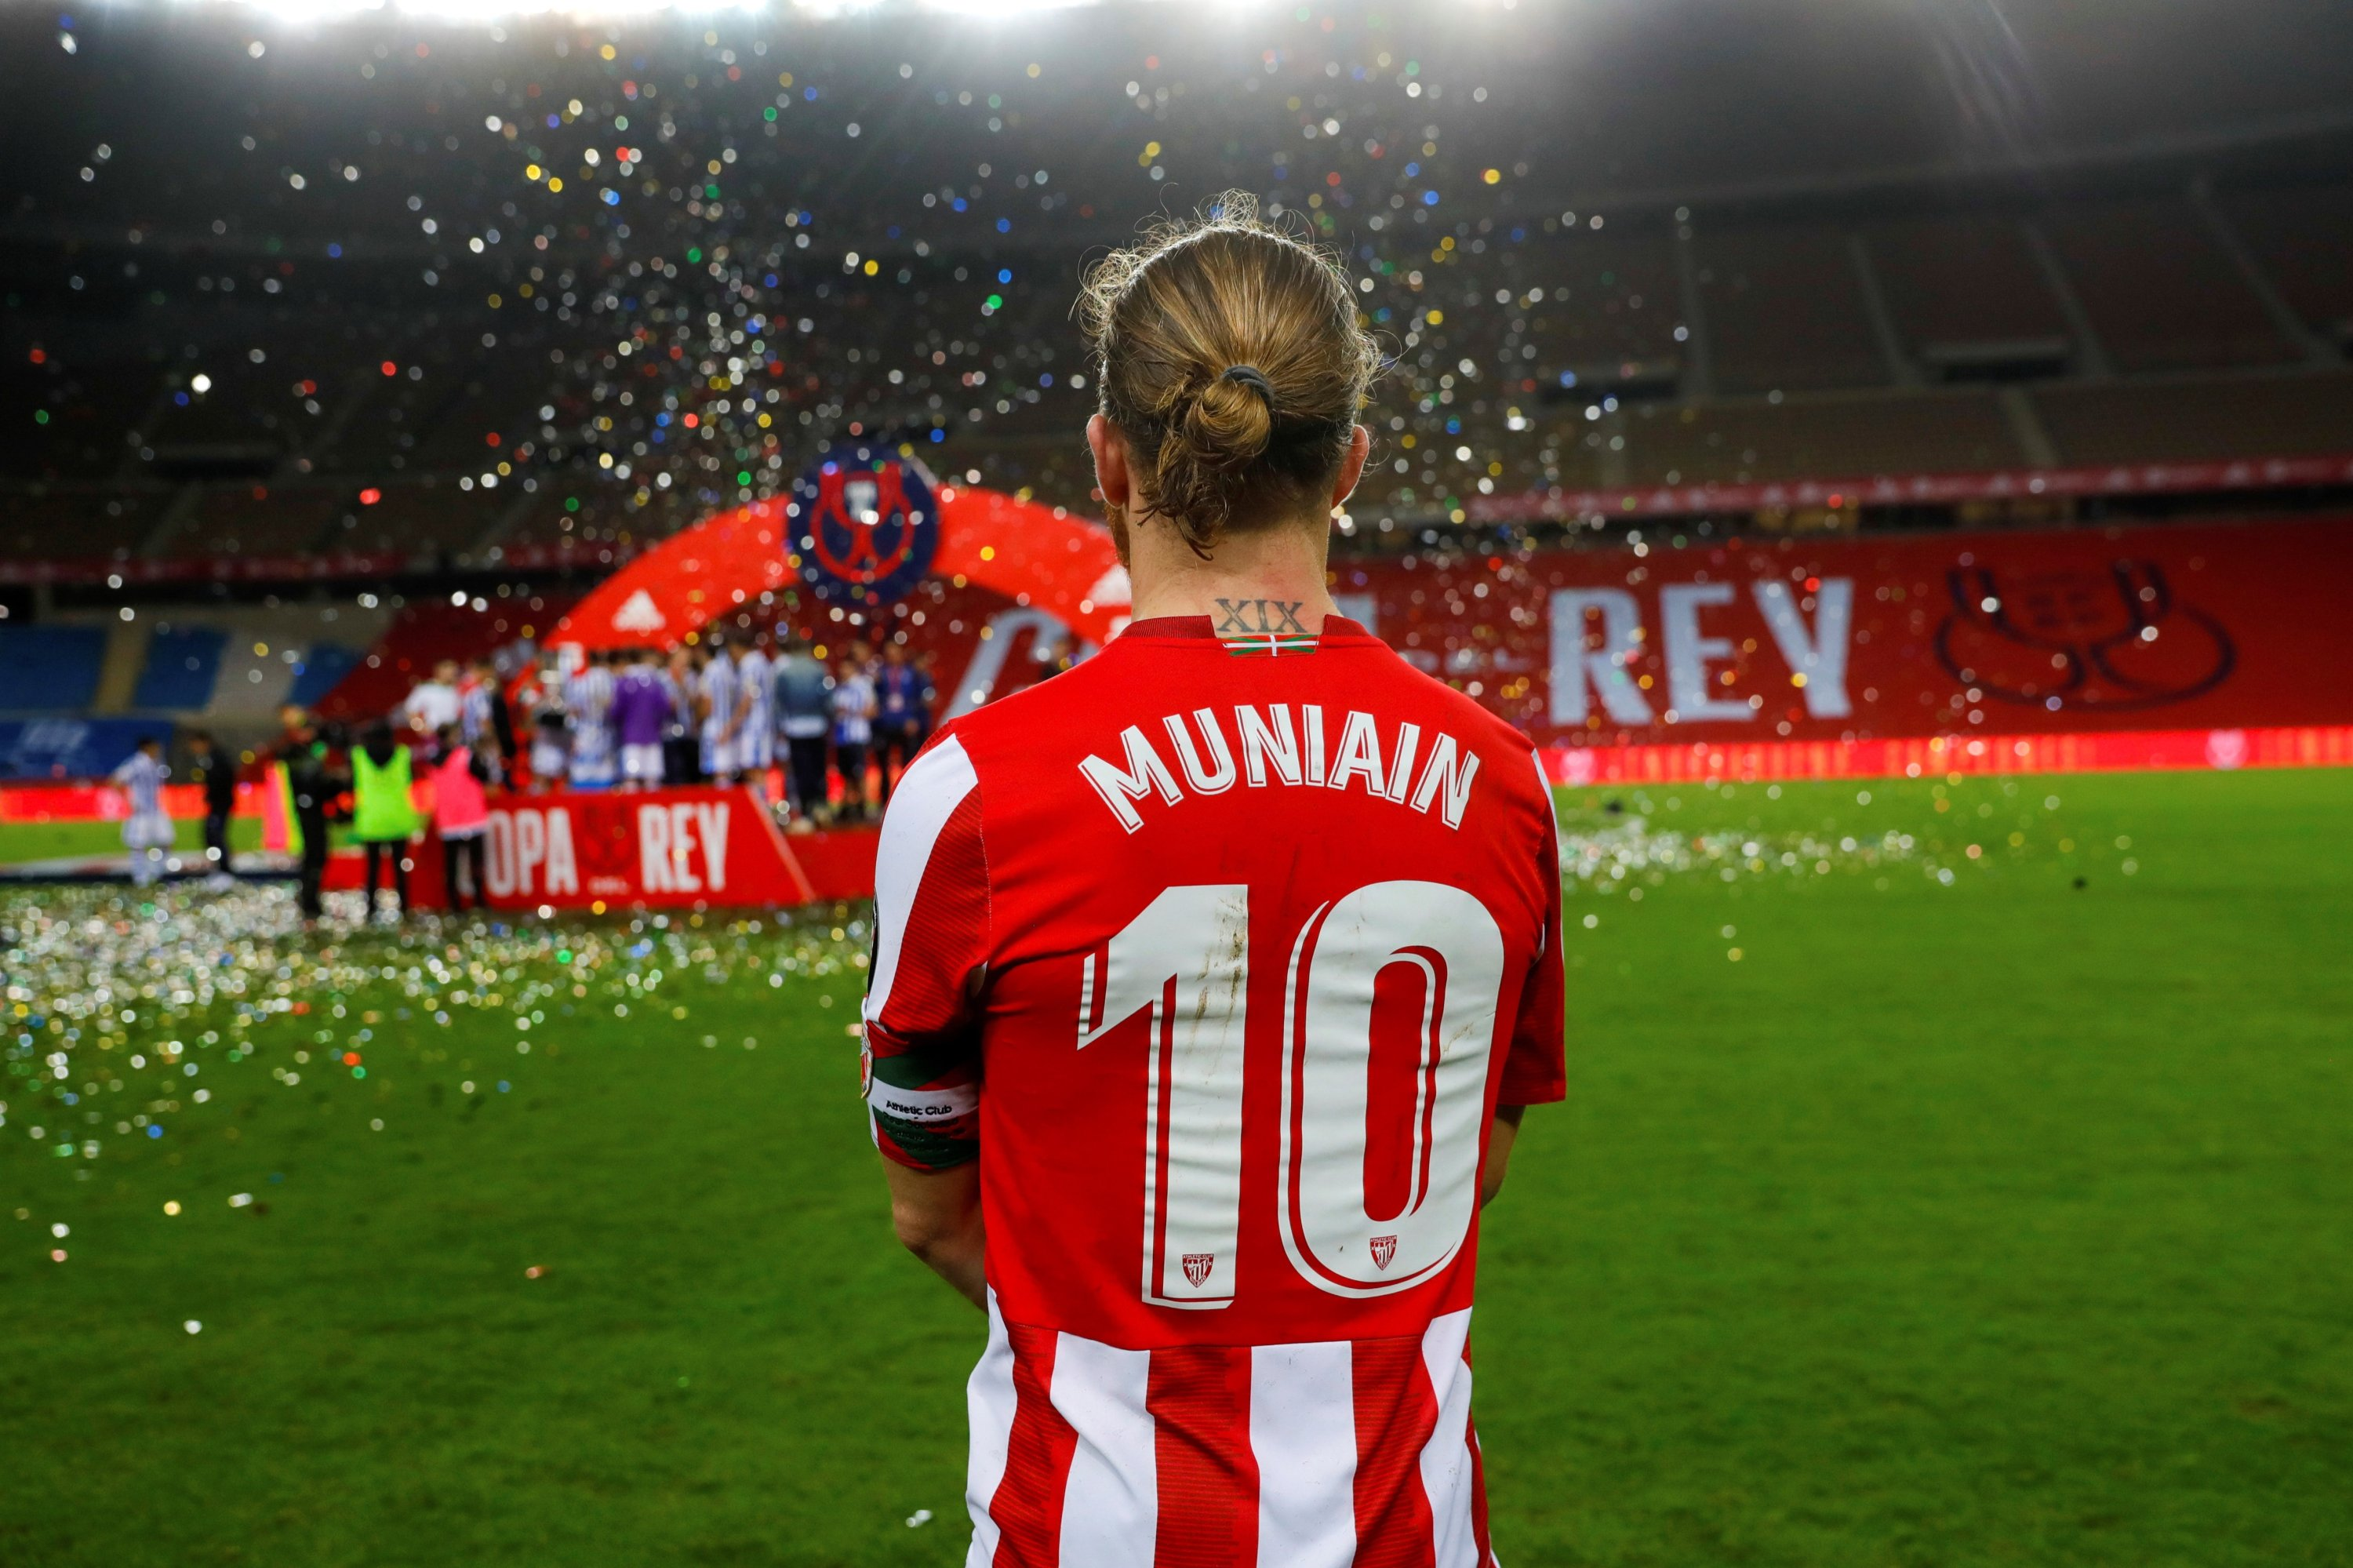 A handout photo made available by the Spanish Royal Soccer Federation (RFEF) shows Athletic Club's captain Iker Muniain watching Real Sociedad's celebrations at the end of 2020 Copa Del Rey final match against Athletic Bilbao at La Cartuja stadium in Seville, Andalusia, Spain, April 03, 2921. (RFEF via EPA)